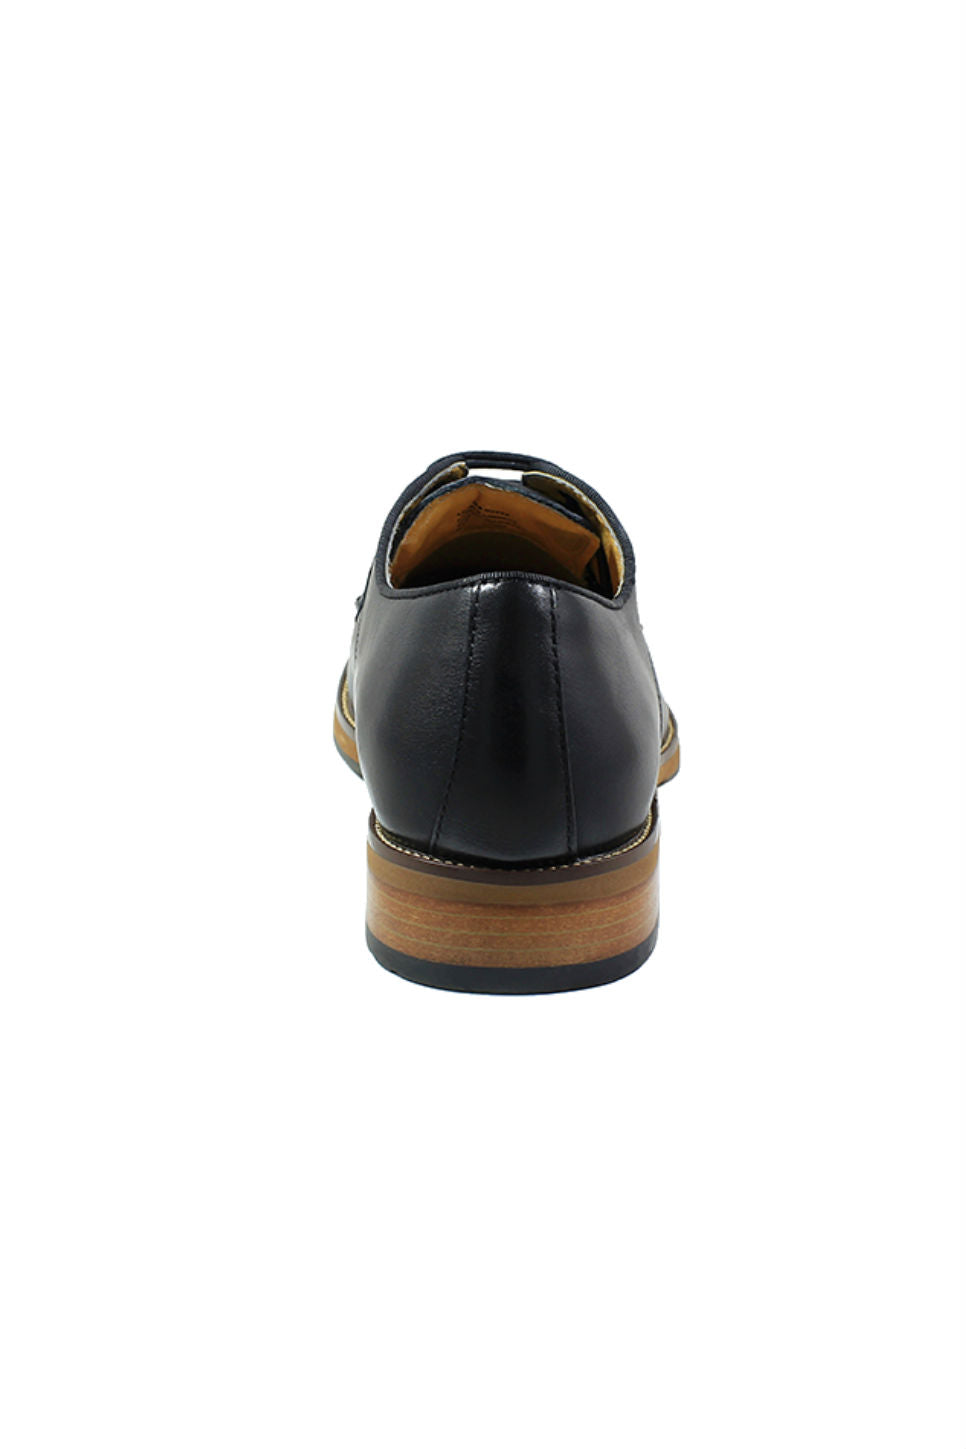 BLAZE PLAIN TOE OXFORD - BLACK